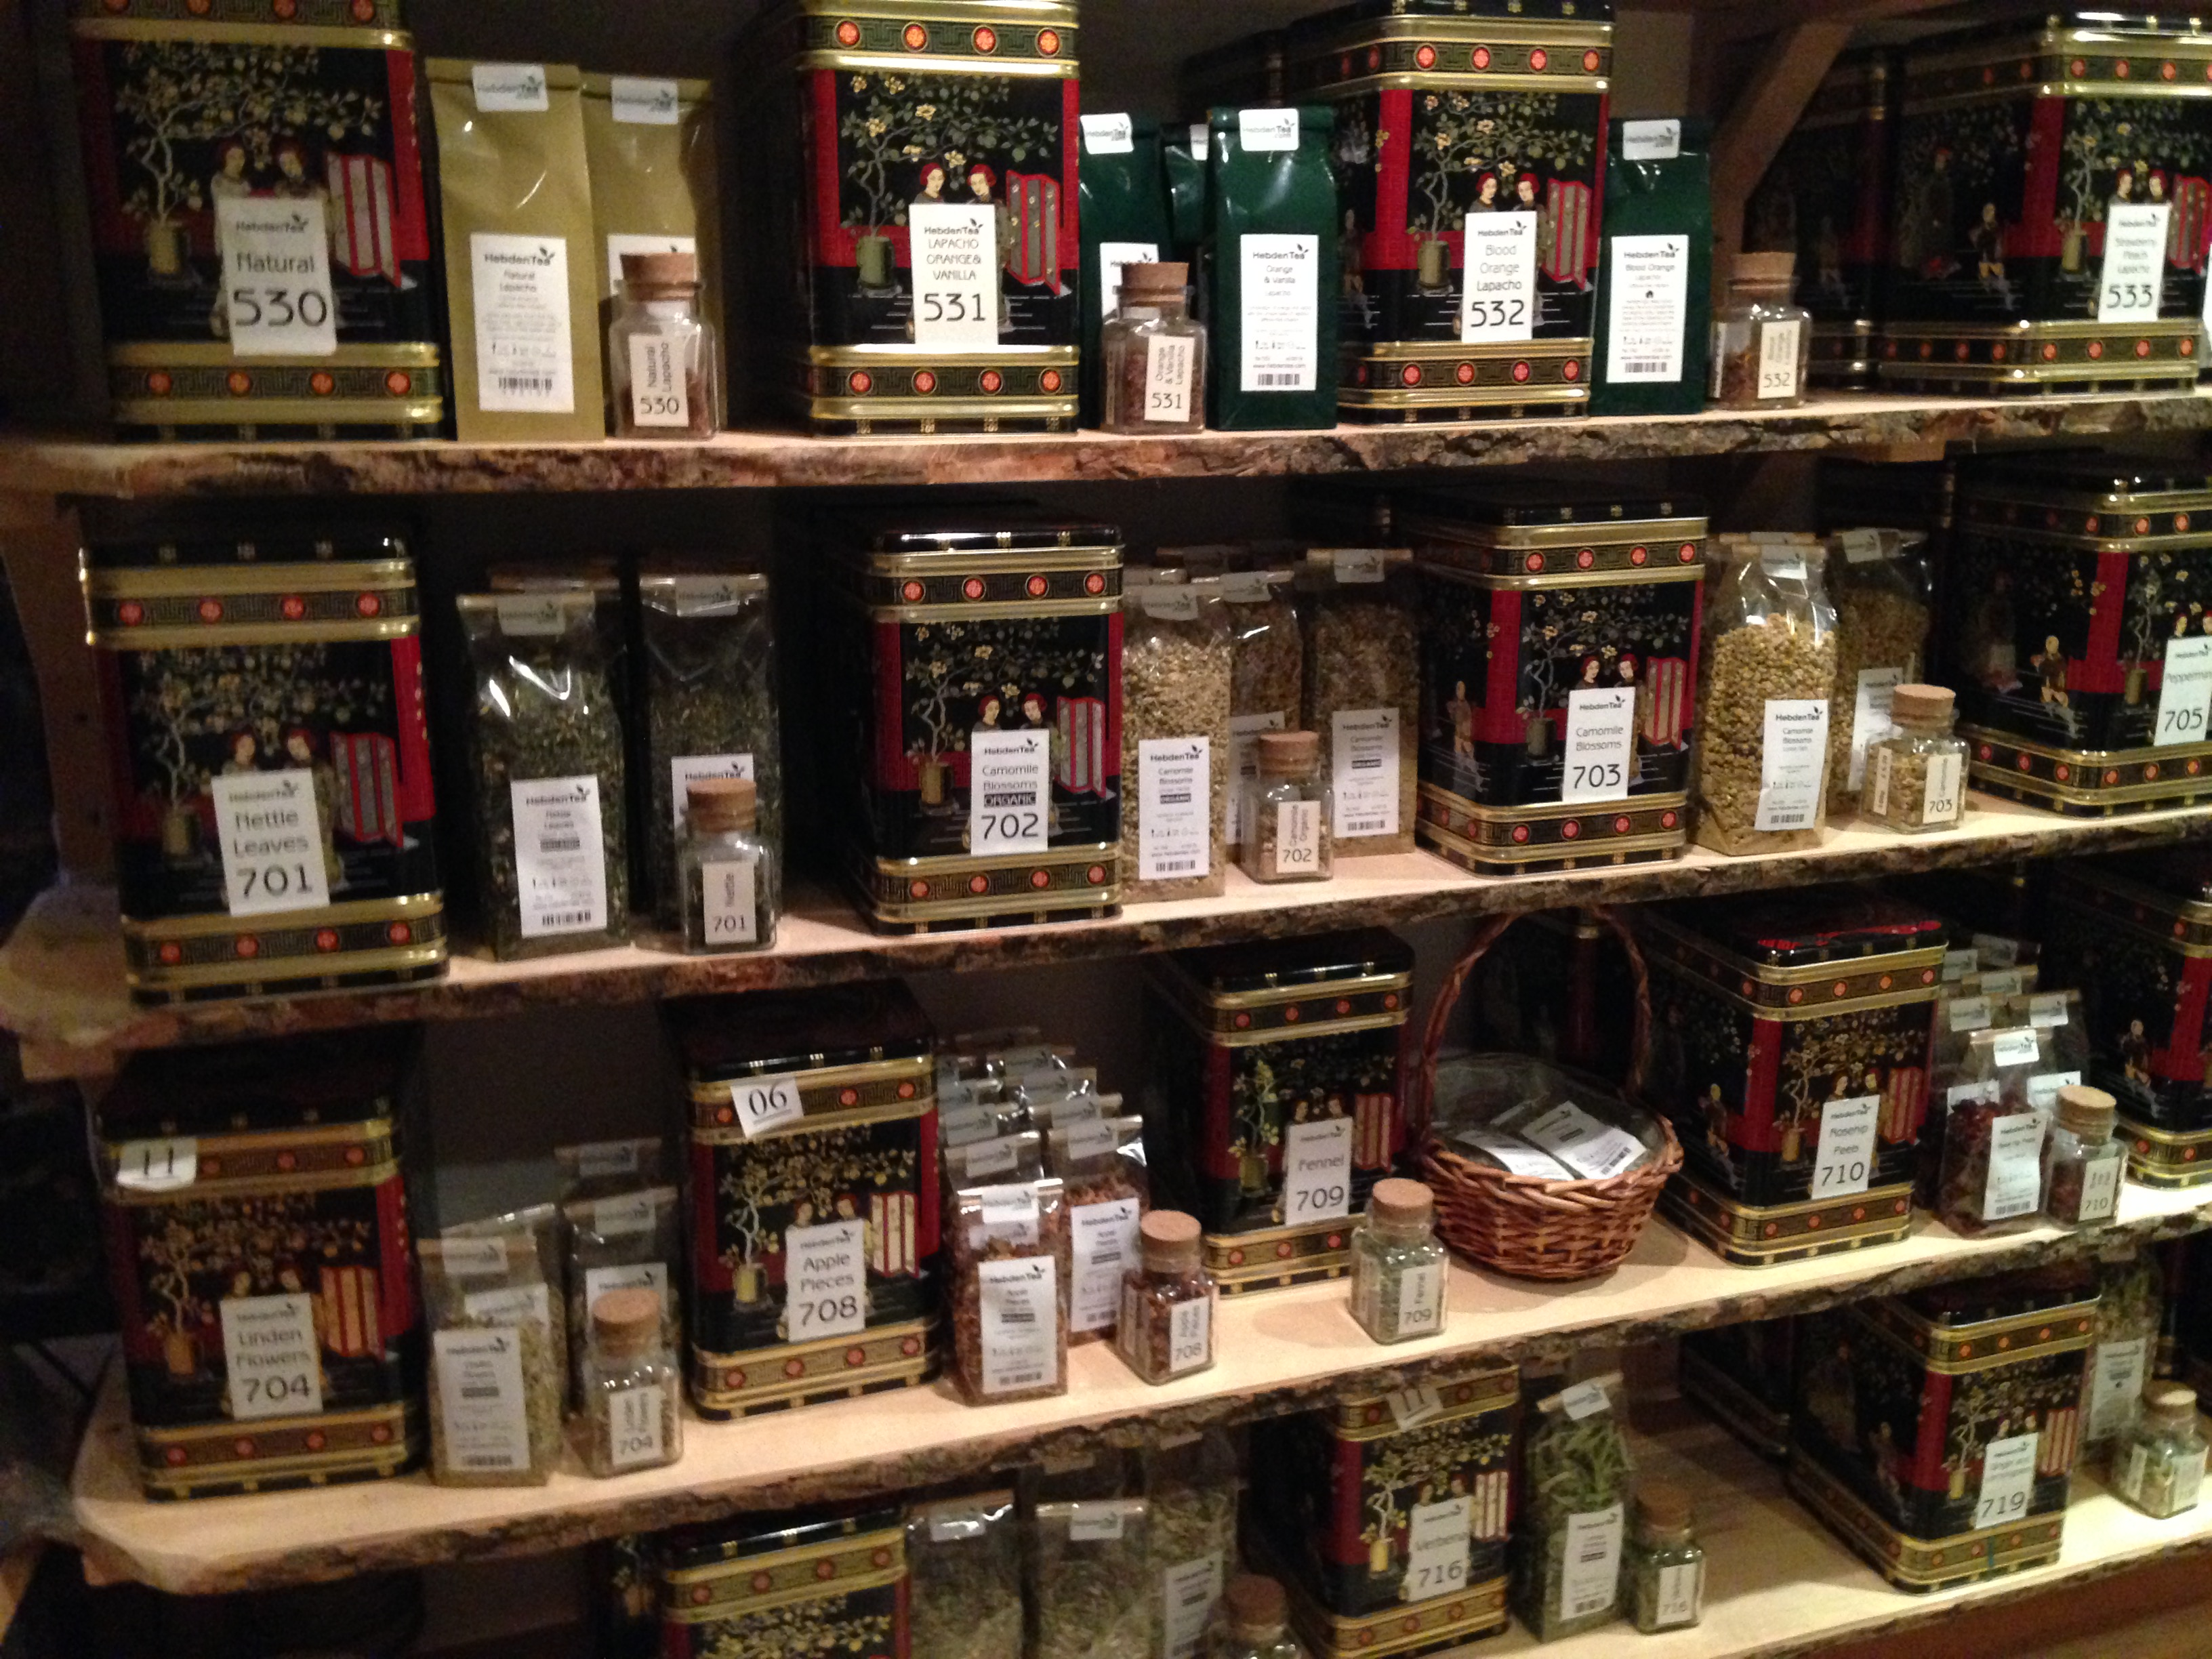 Some of the variety of teas available from Hebden Tea.